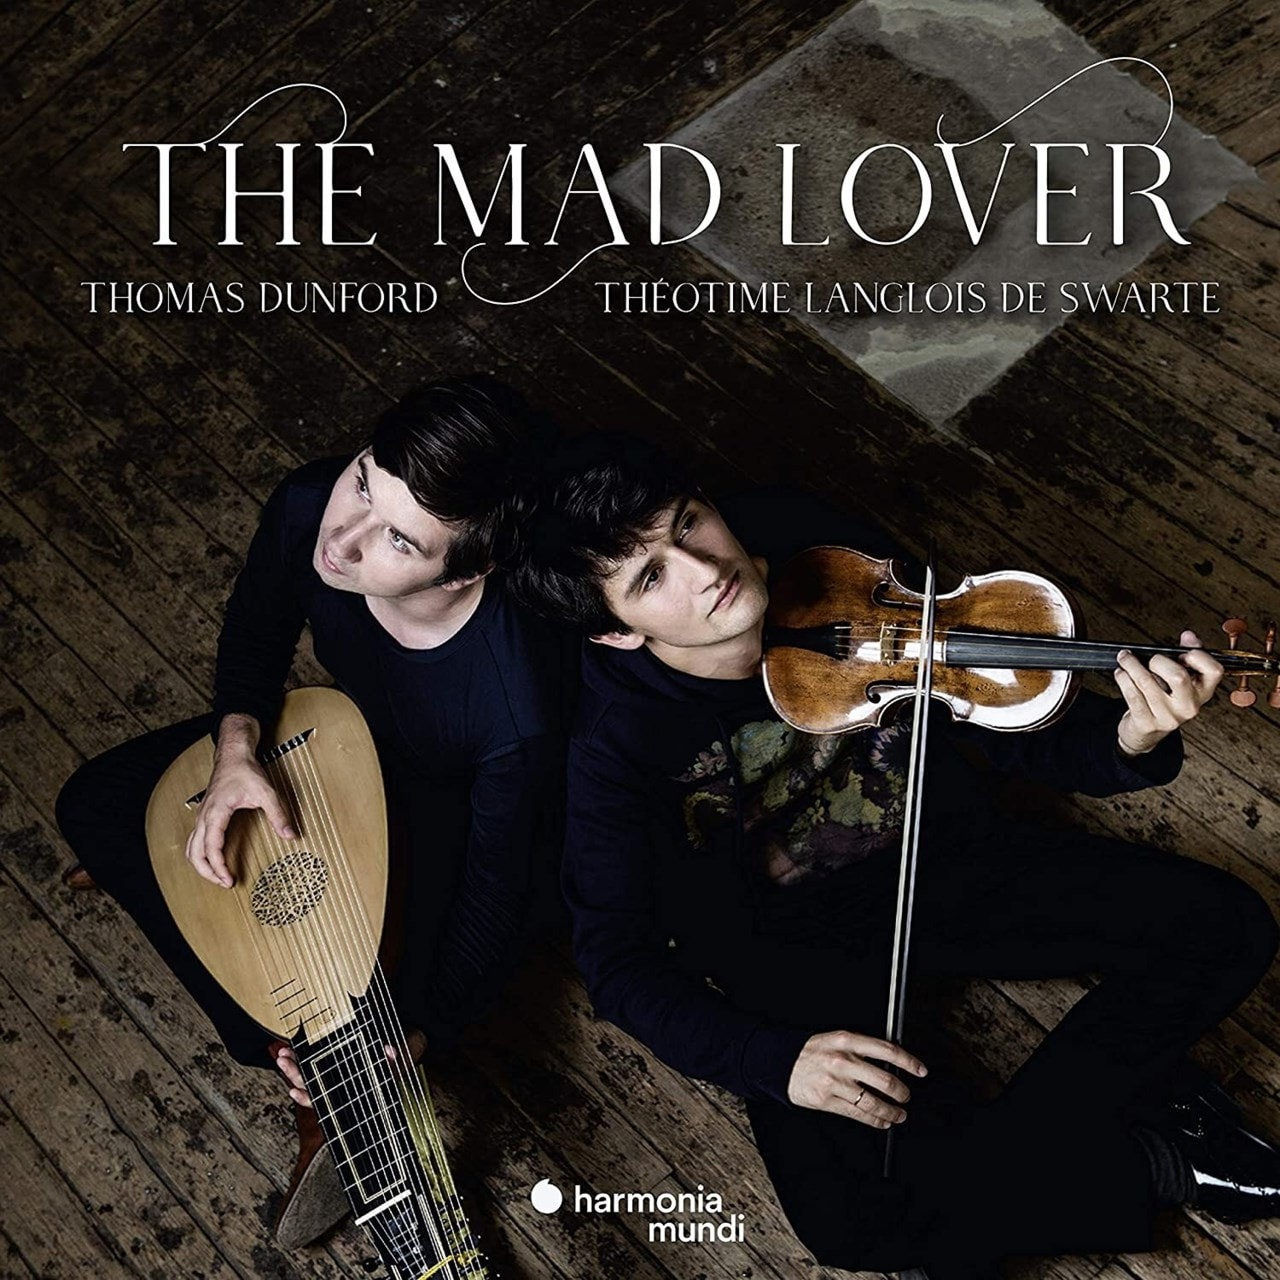 Thomas Dunford/Theotime Langlois De Swarte: The Mad Lover - 1